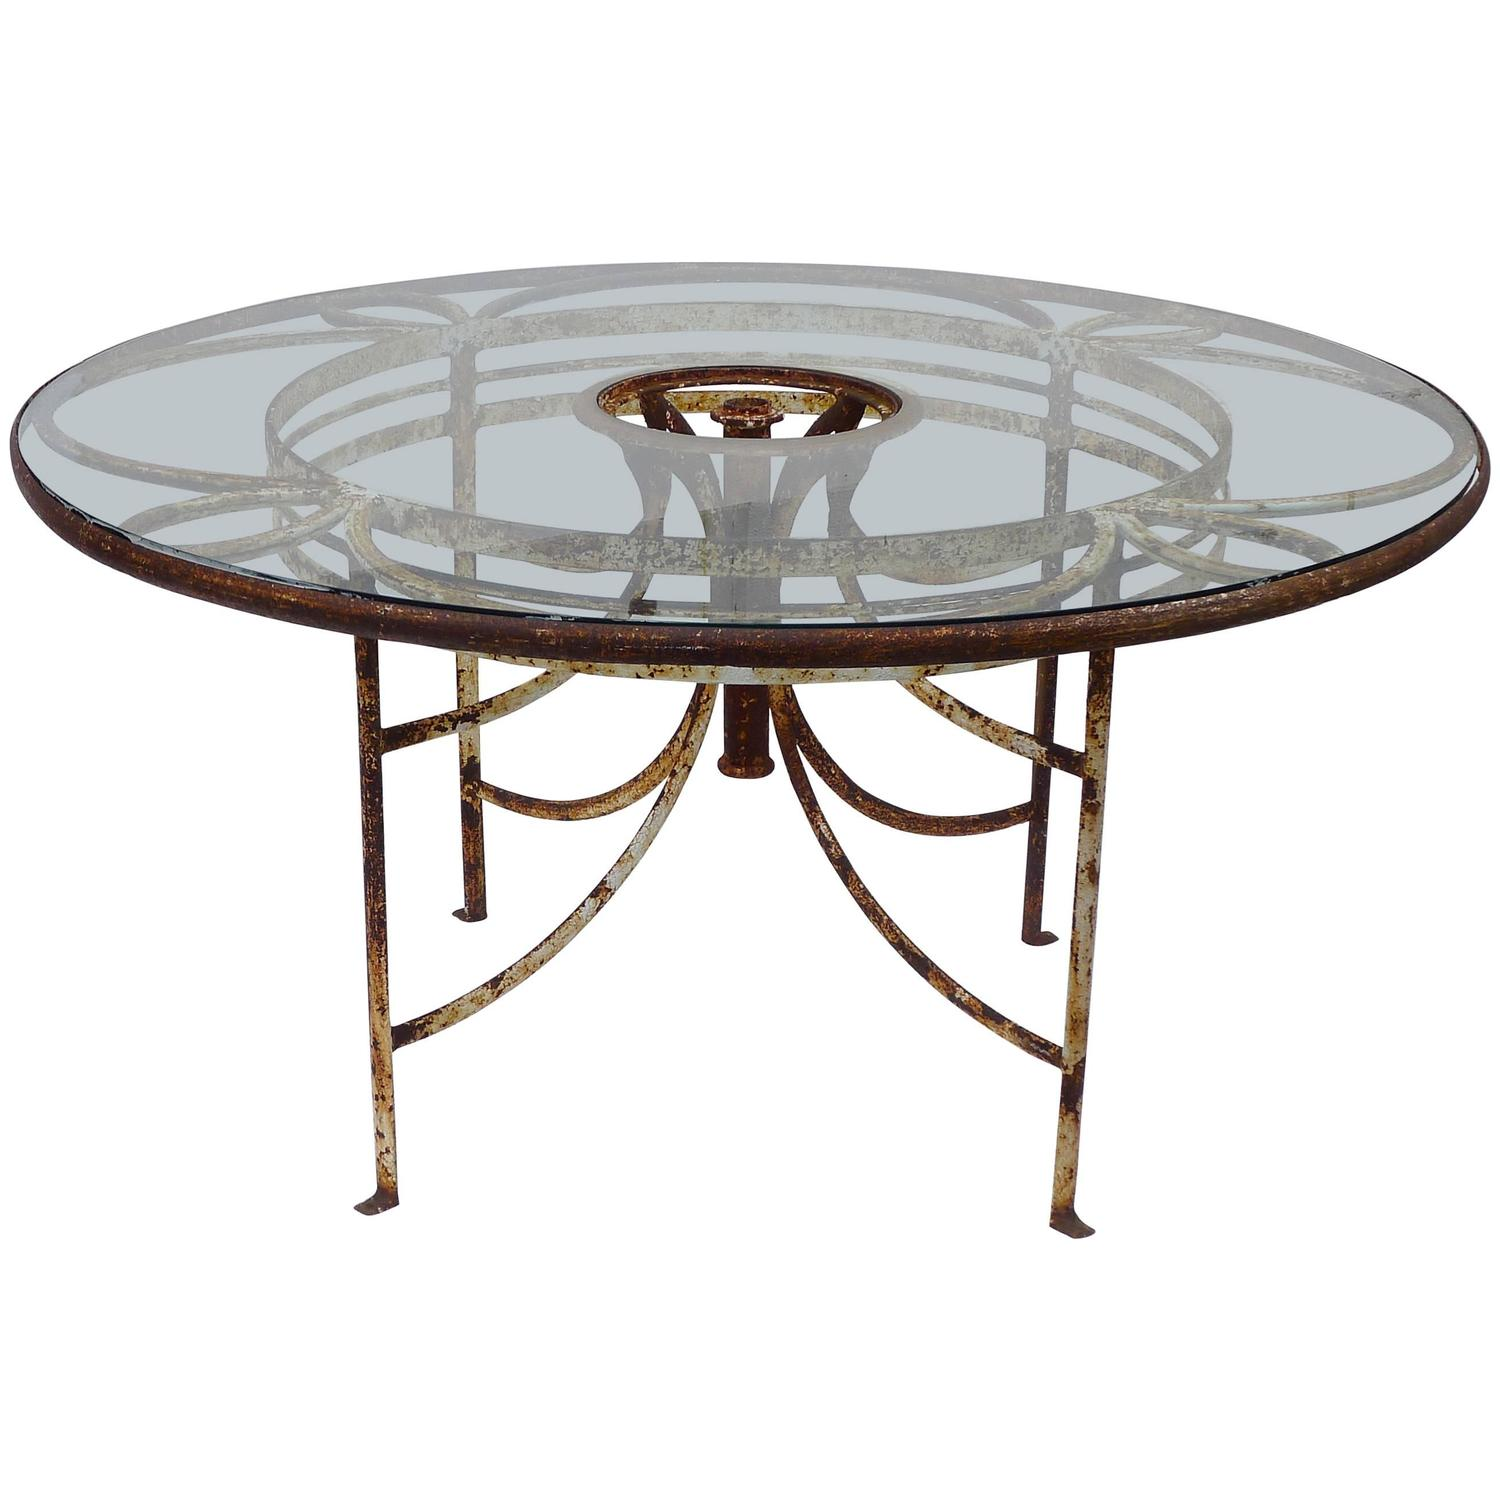 1930s French Iron And Glass Outdoor Garden Dining Table 57 Round For Sale At 1stdibs